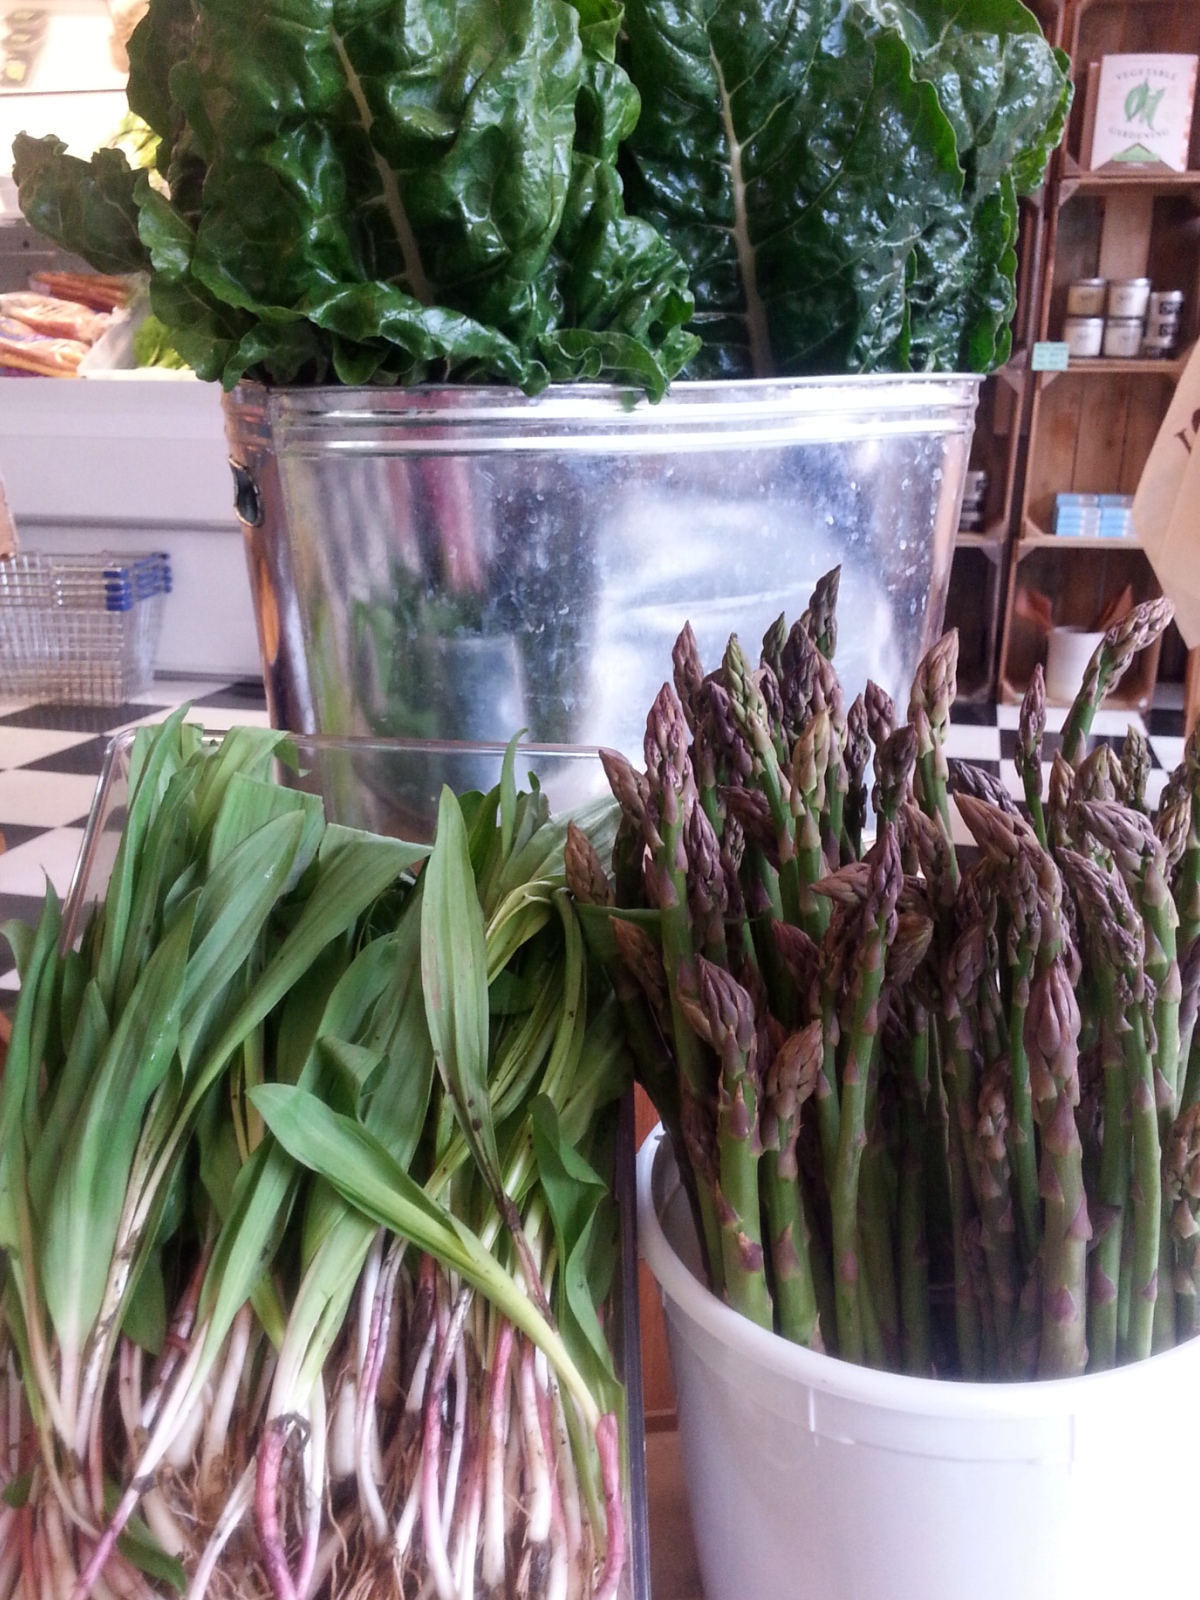 Local chard, asparagus, and ramps!